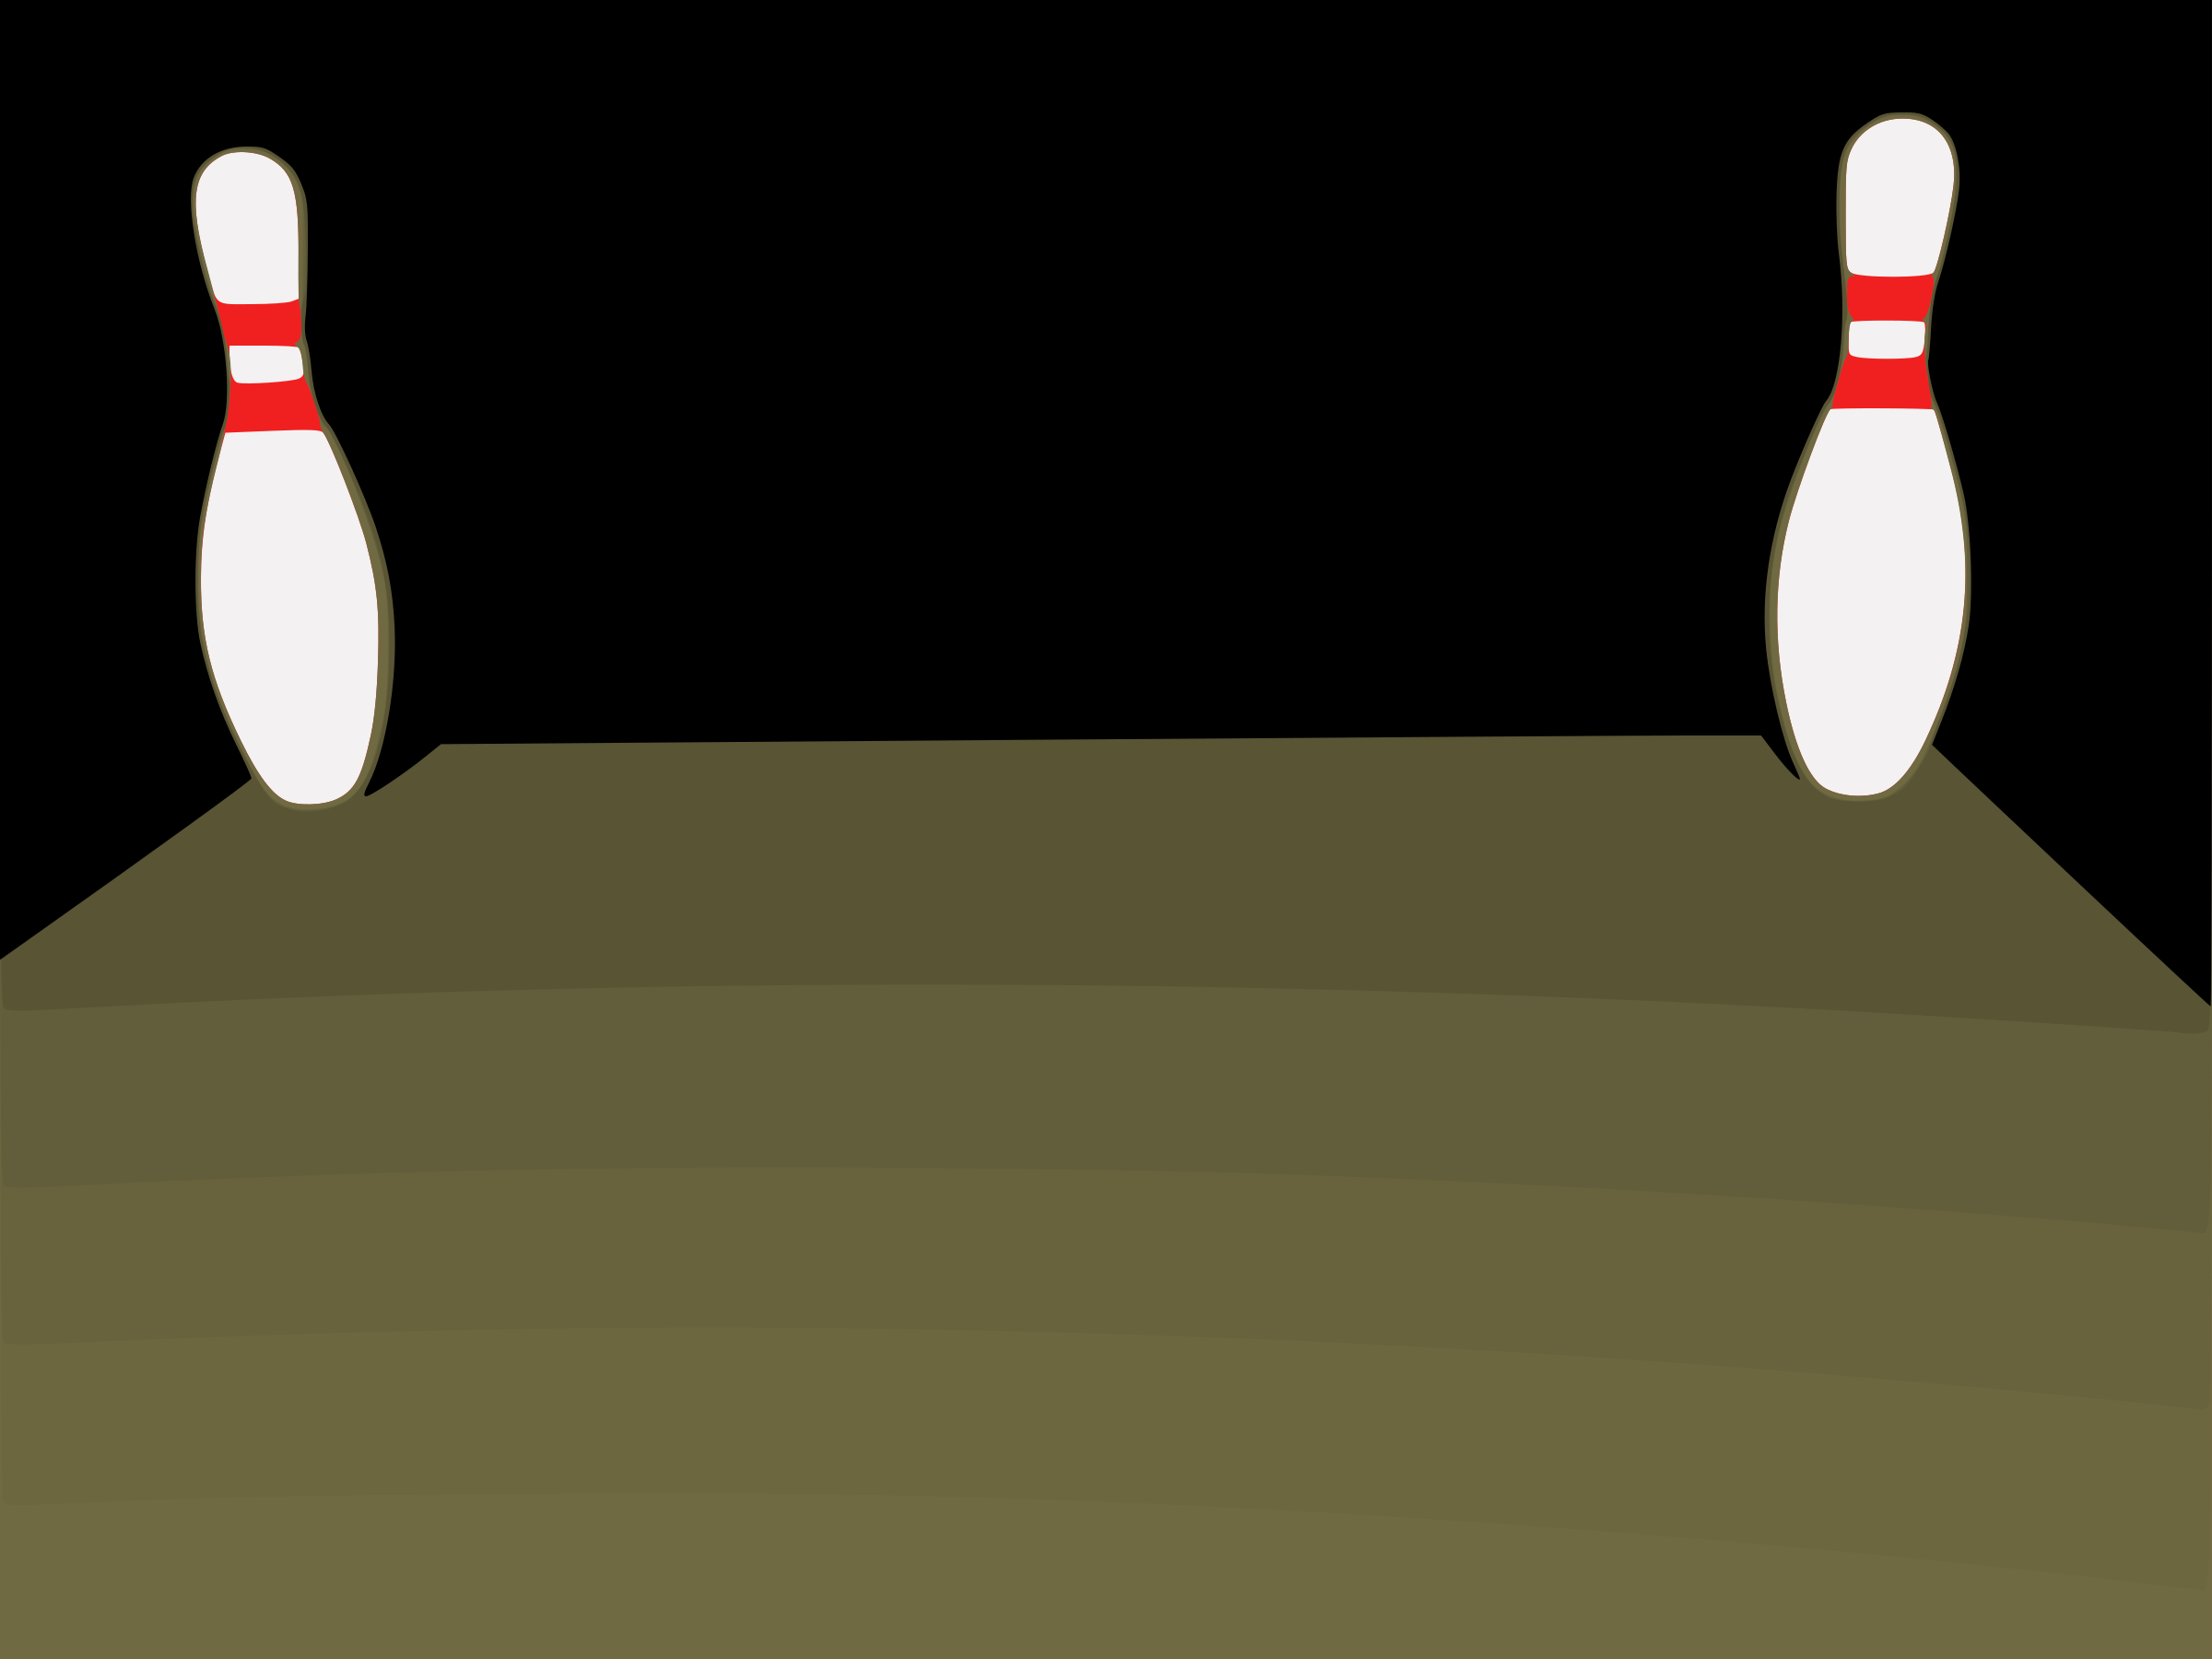 Bowling 7-10 Split by mazeo